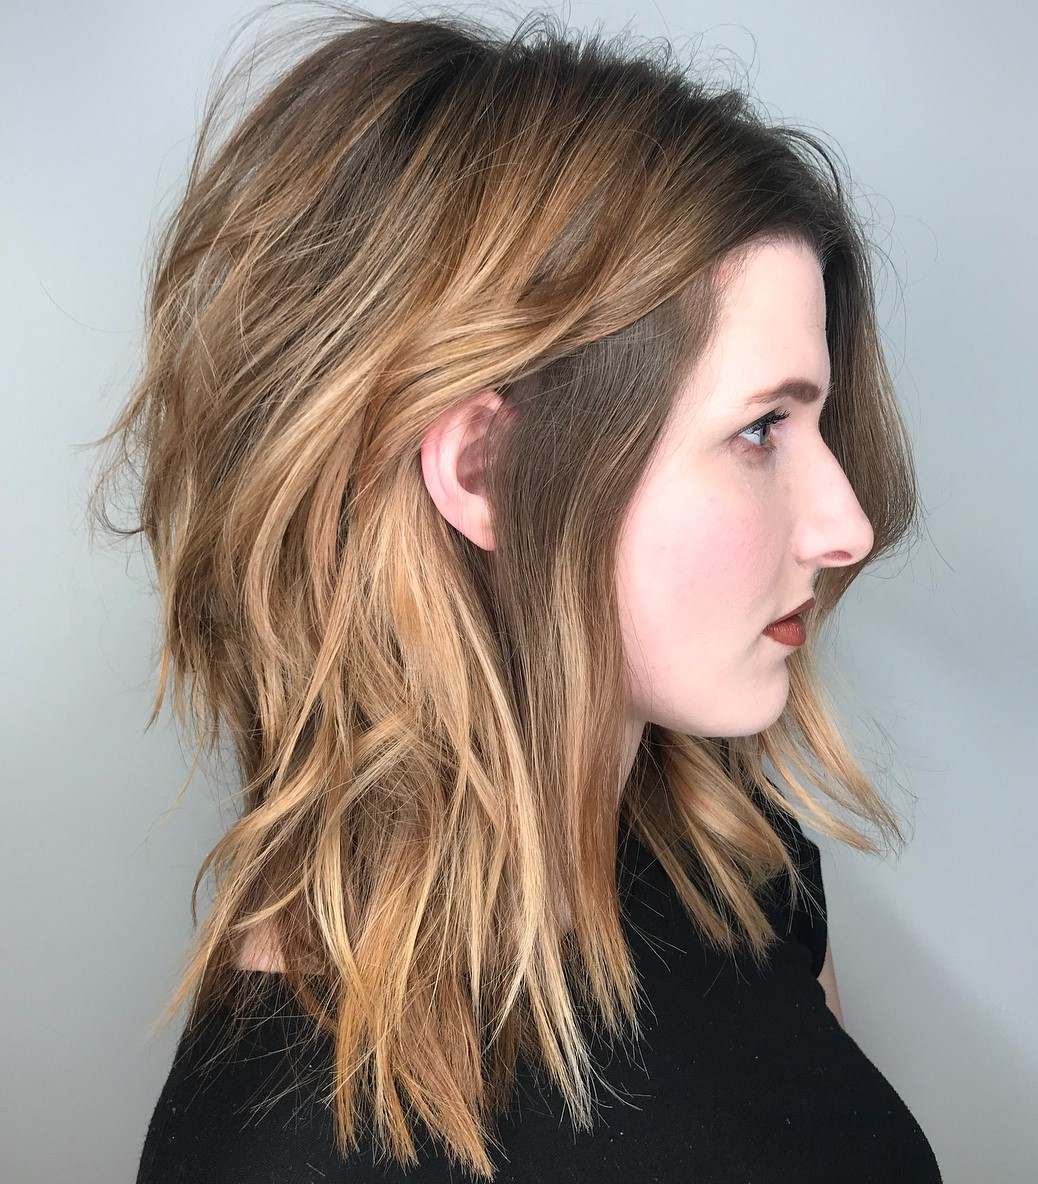 Shaggy Layered Haircut for Thick Hair